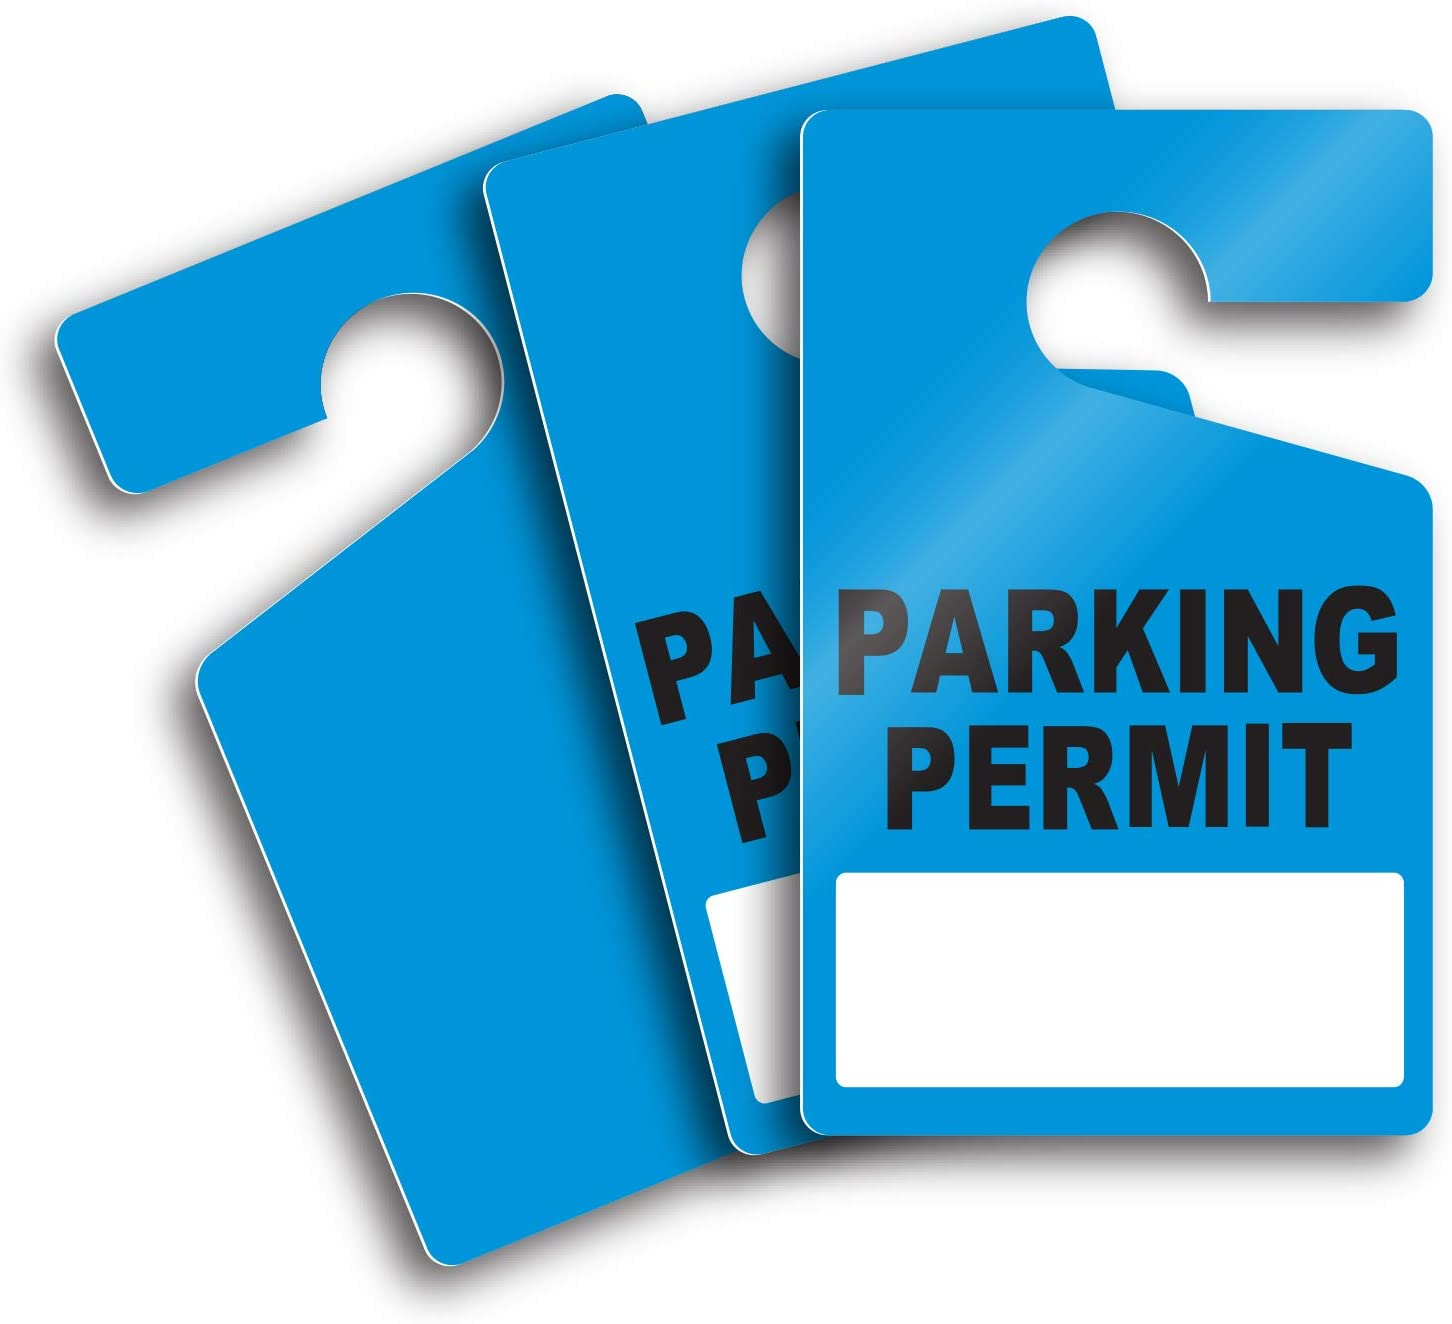 """Milcoast Large 3"""" x 5"""" Parking Permit Pass Hang Tag - for Employees, Tenants, Students, Businesses, Offices, Apartments - 10 Pack (Blue)"""